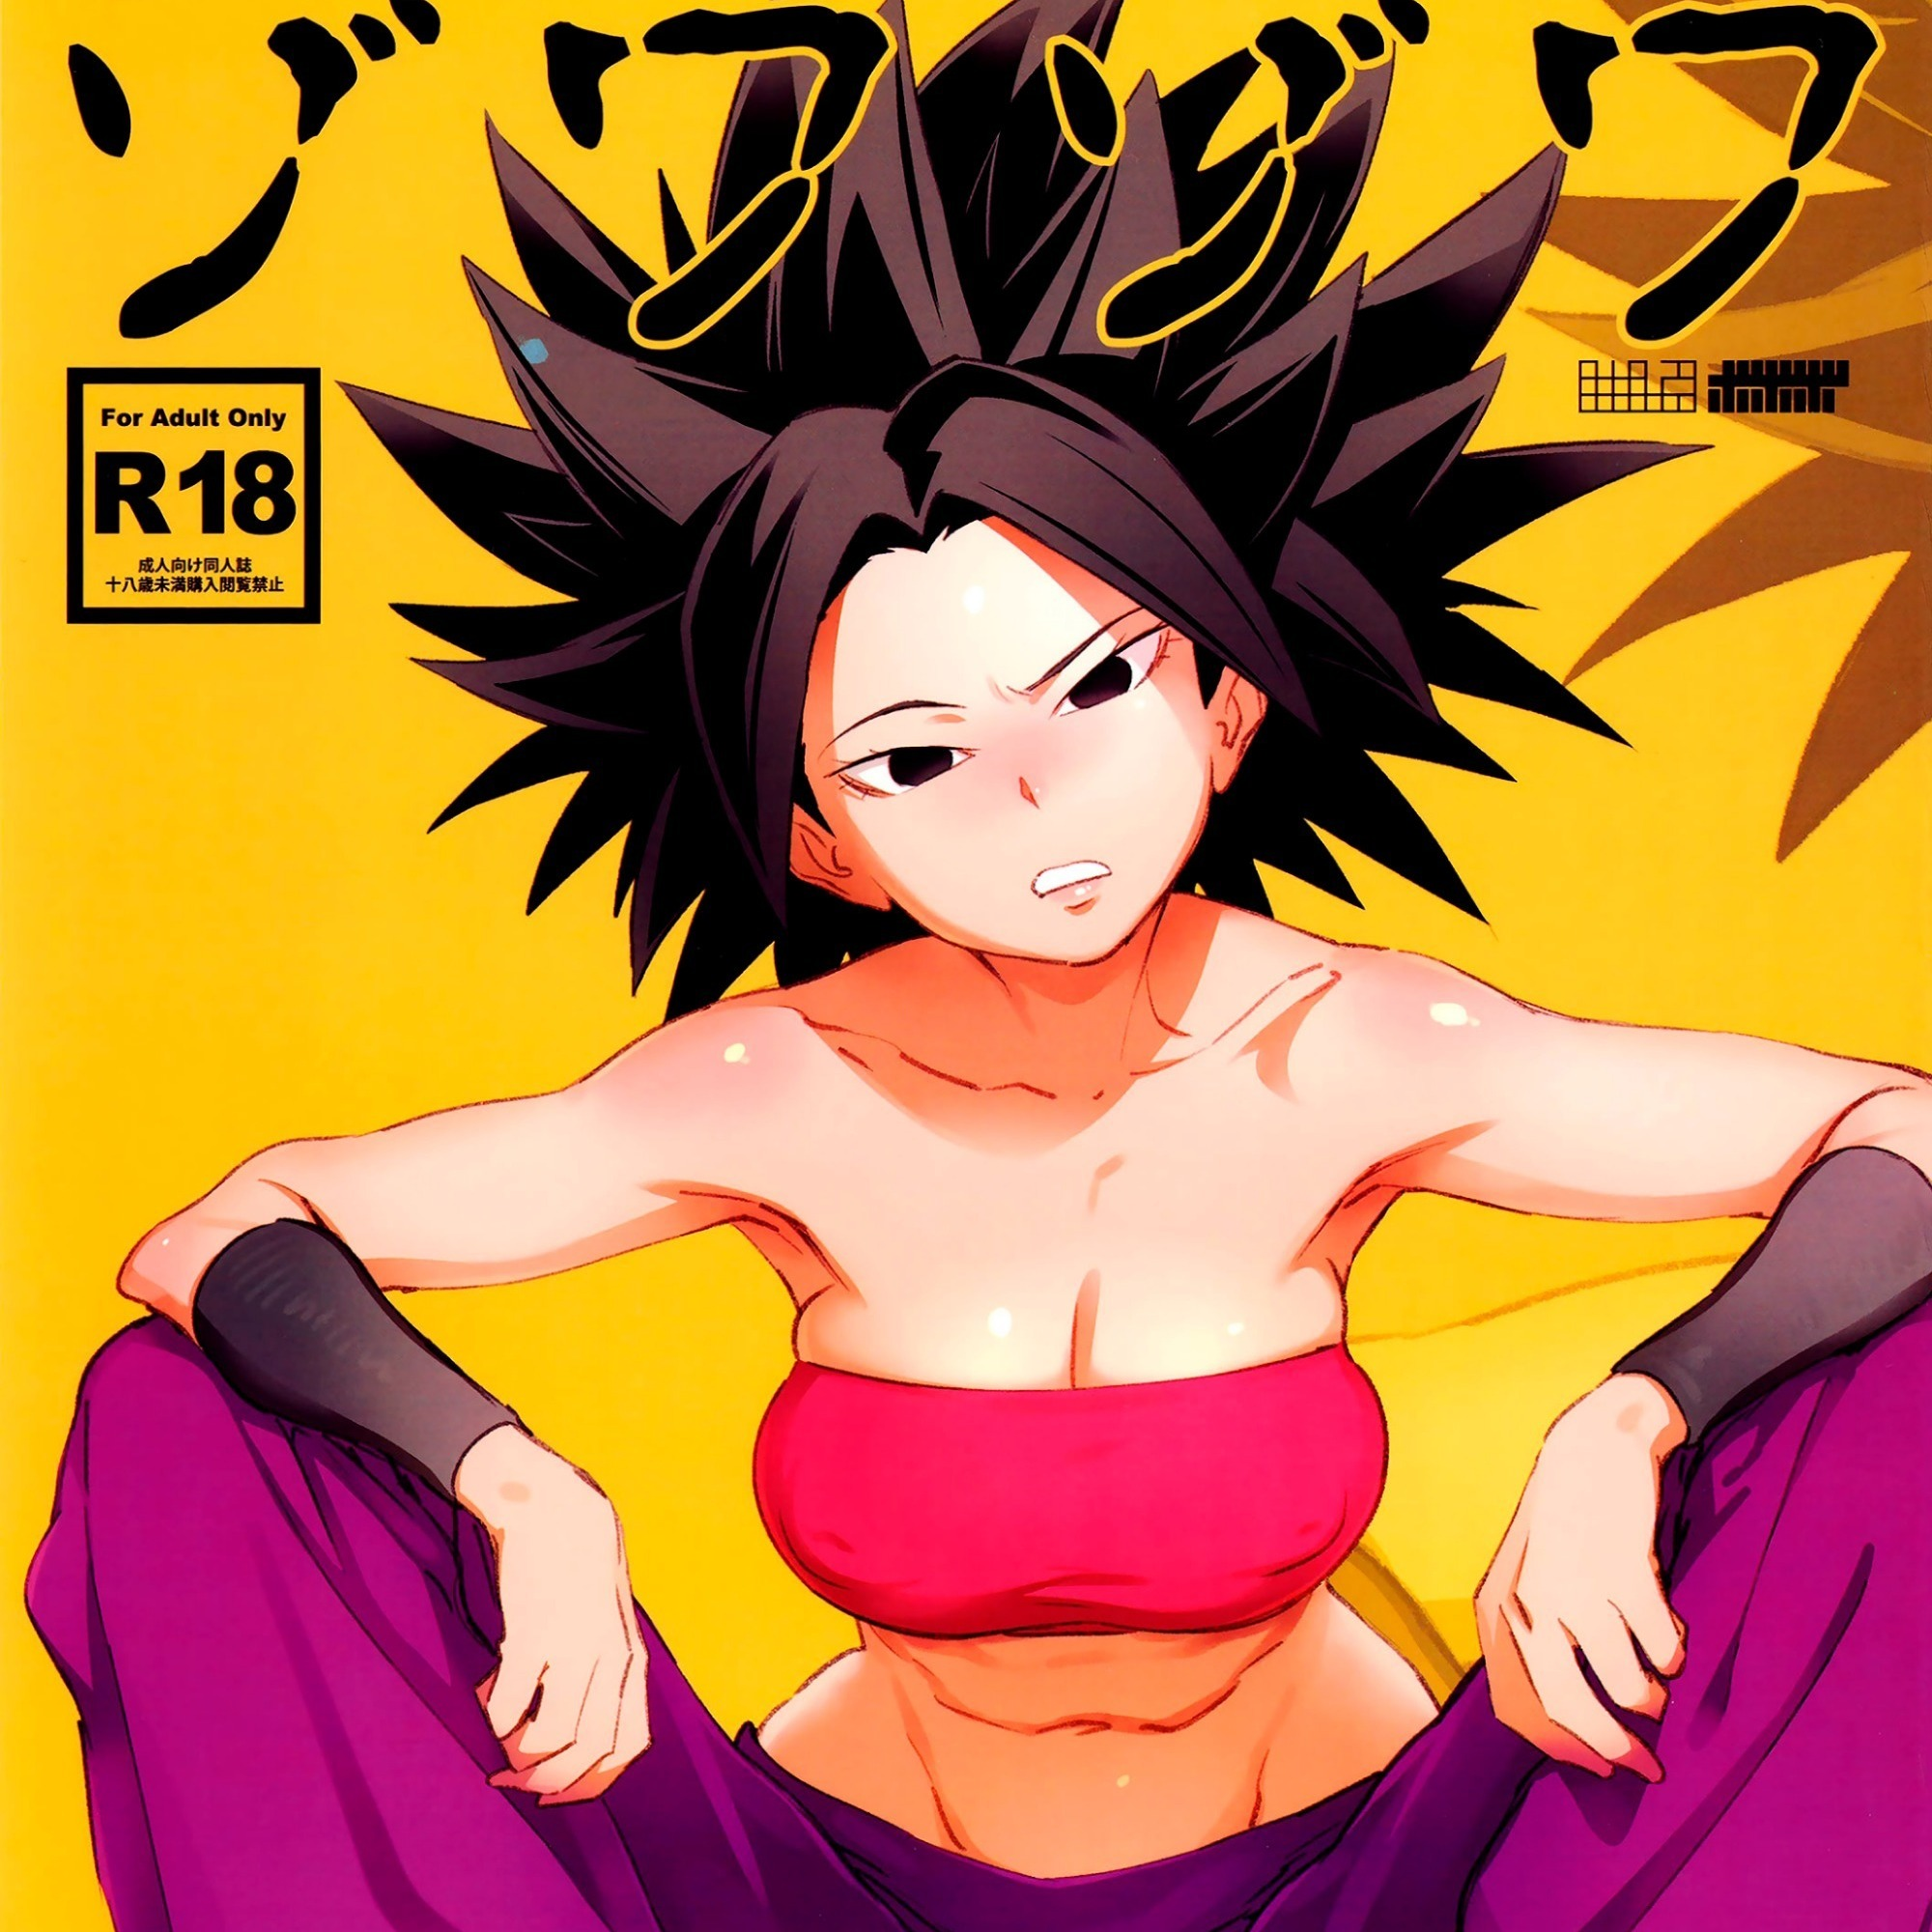 Zowa - Zowa (Dragon Ball Super)(Doujinshi)